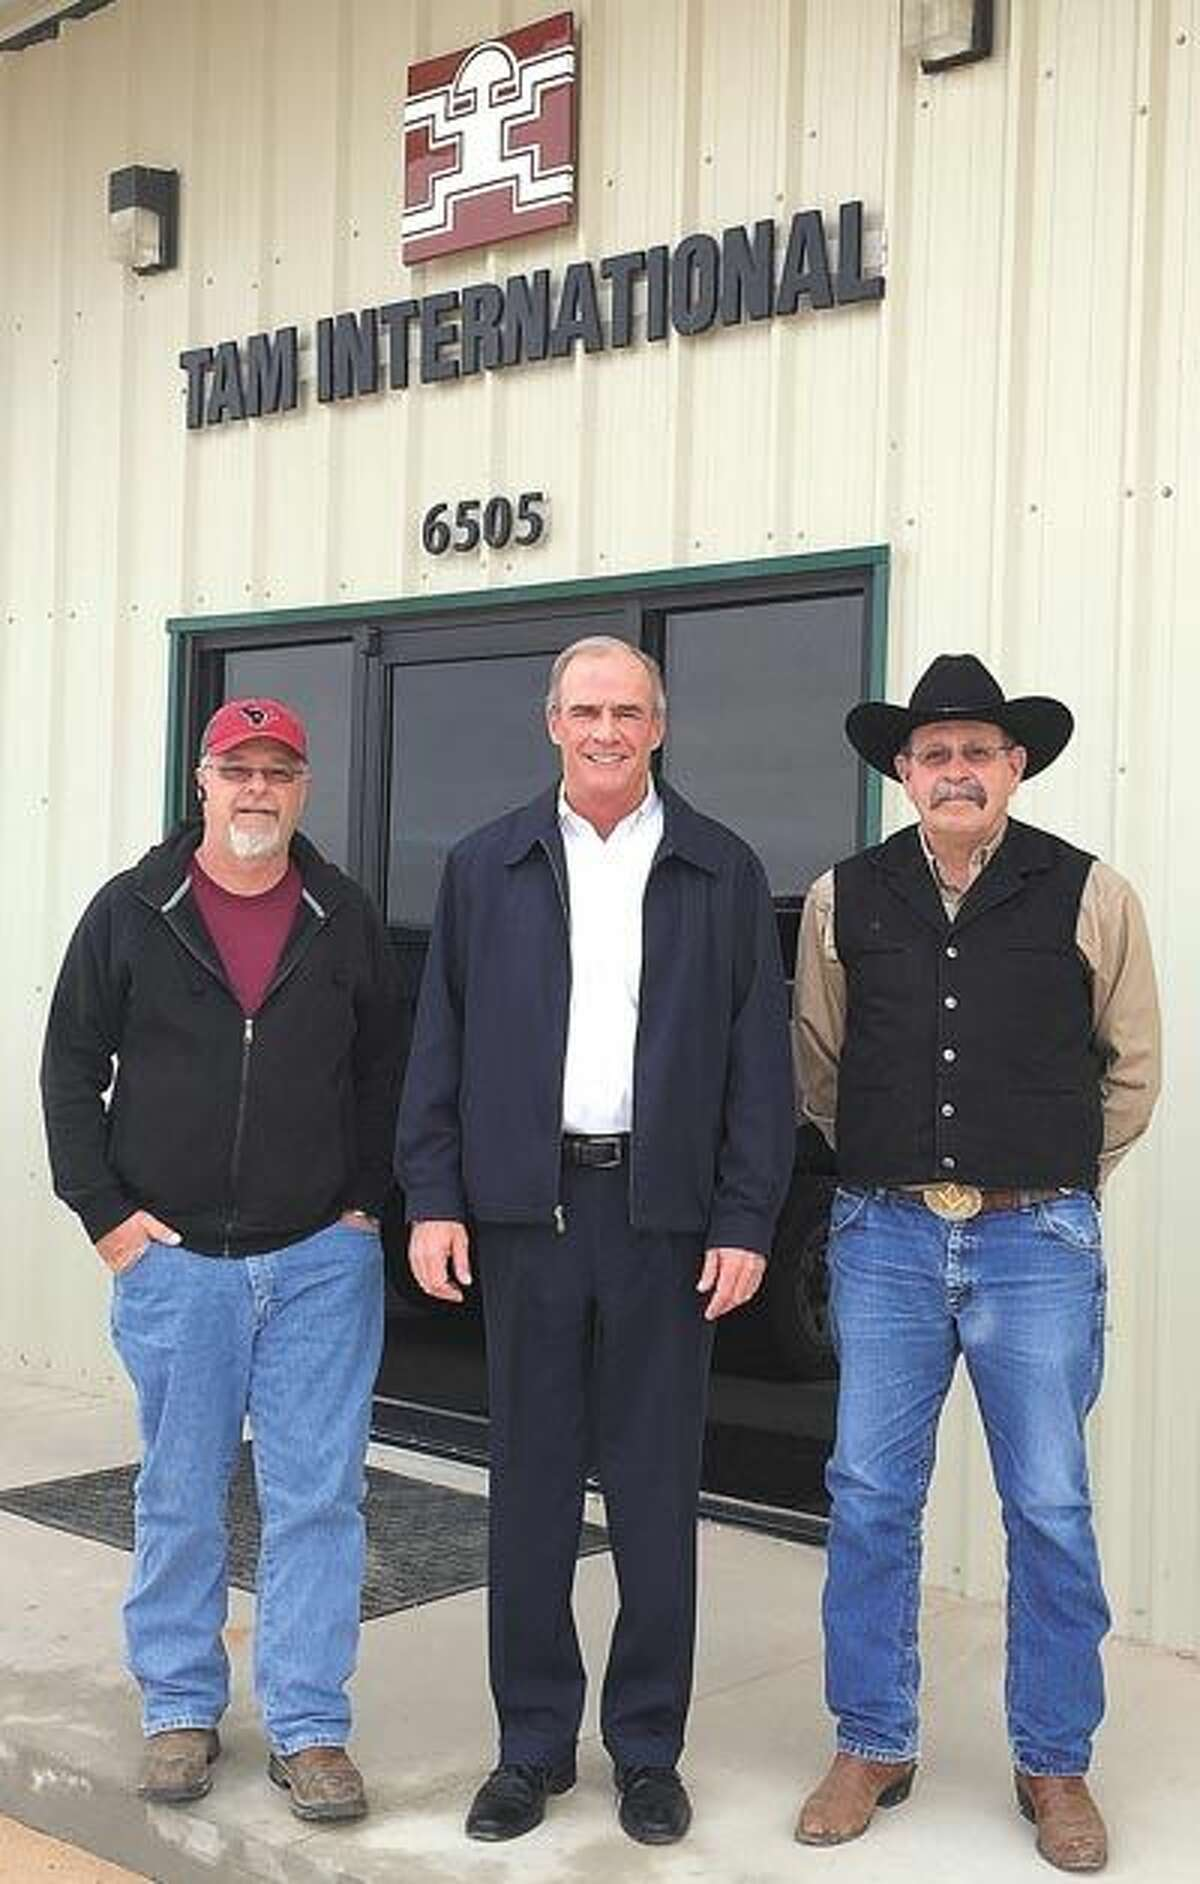 TAM International's experienced leadership team offers individualized solutions for Permian Basin operators. From left, they are: Operations Manager B. A. Perryman, General Manager Tom O' Grady and Technical Sales Representative Ken Newton.